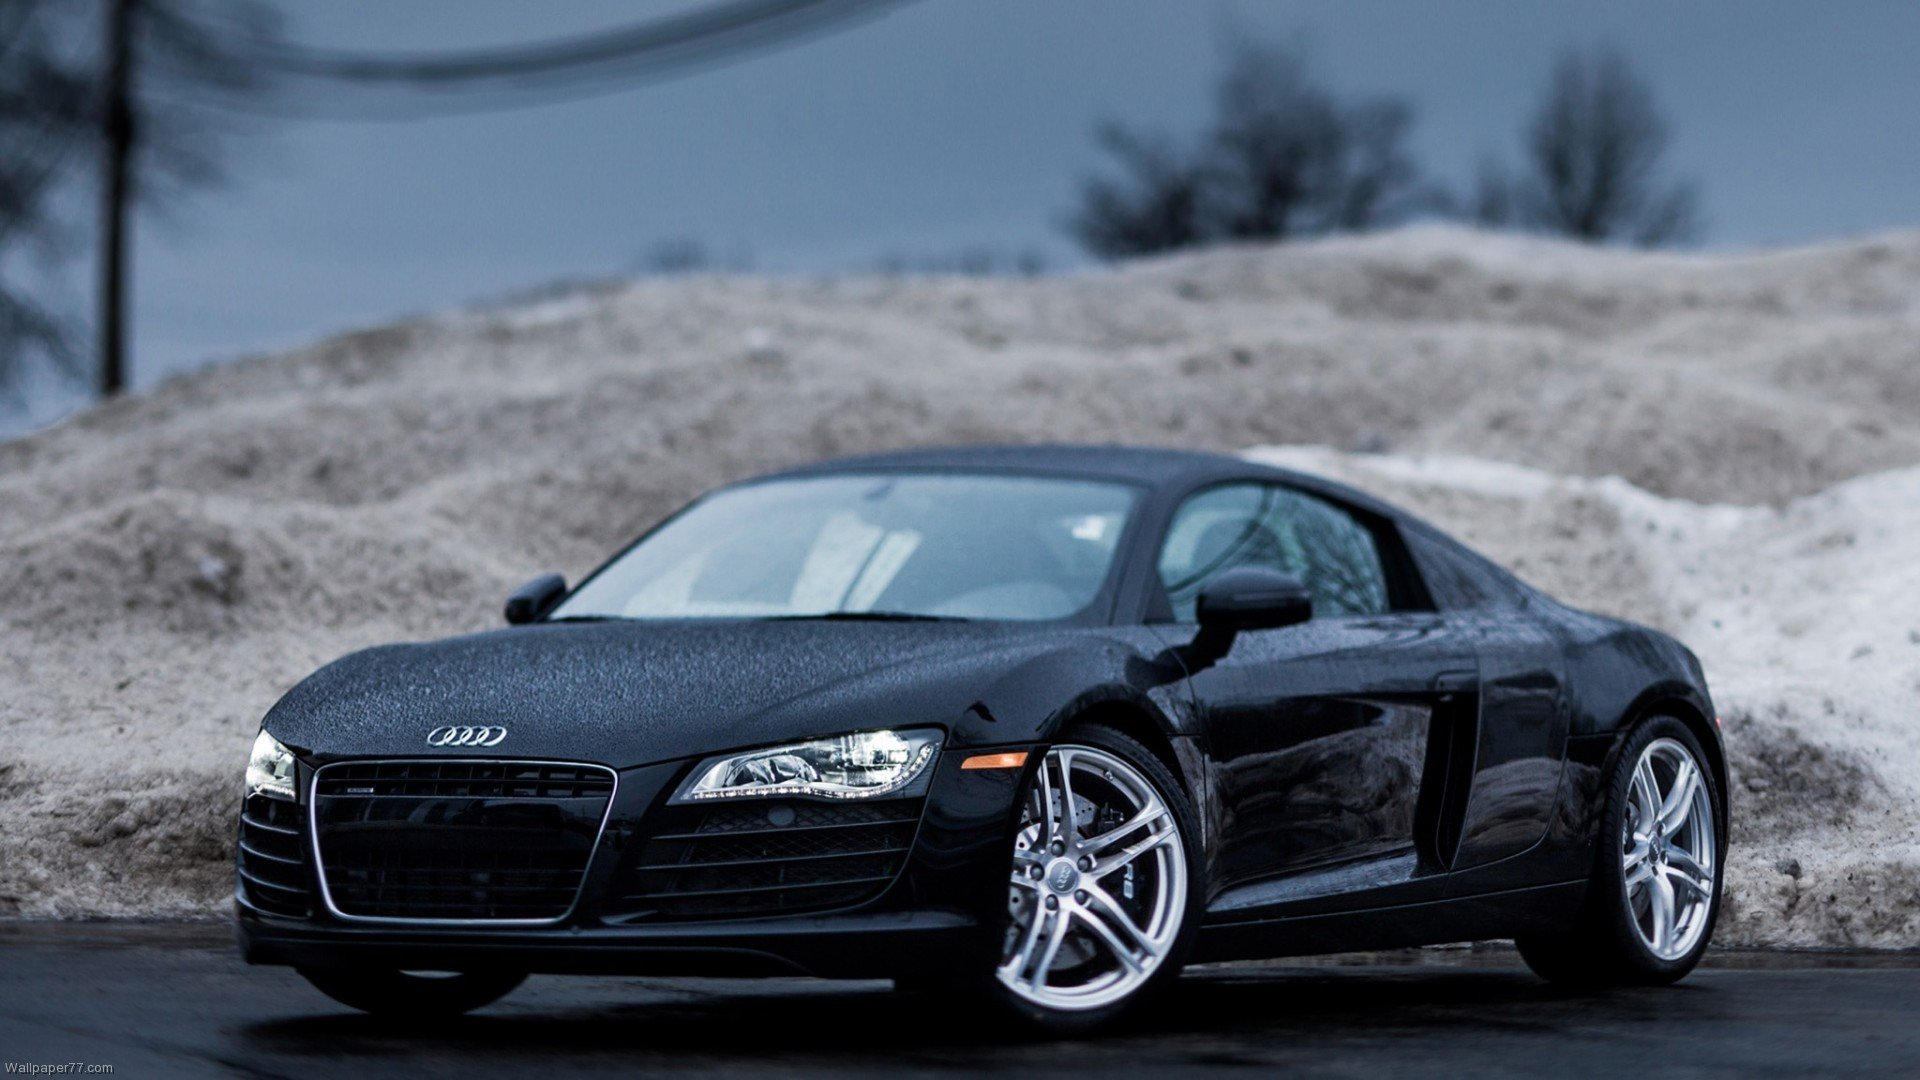 the new ipad wallpaper car wallpapers audi wallpapers 1920x1080jpg 1920x1080